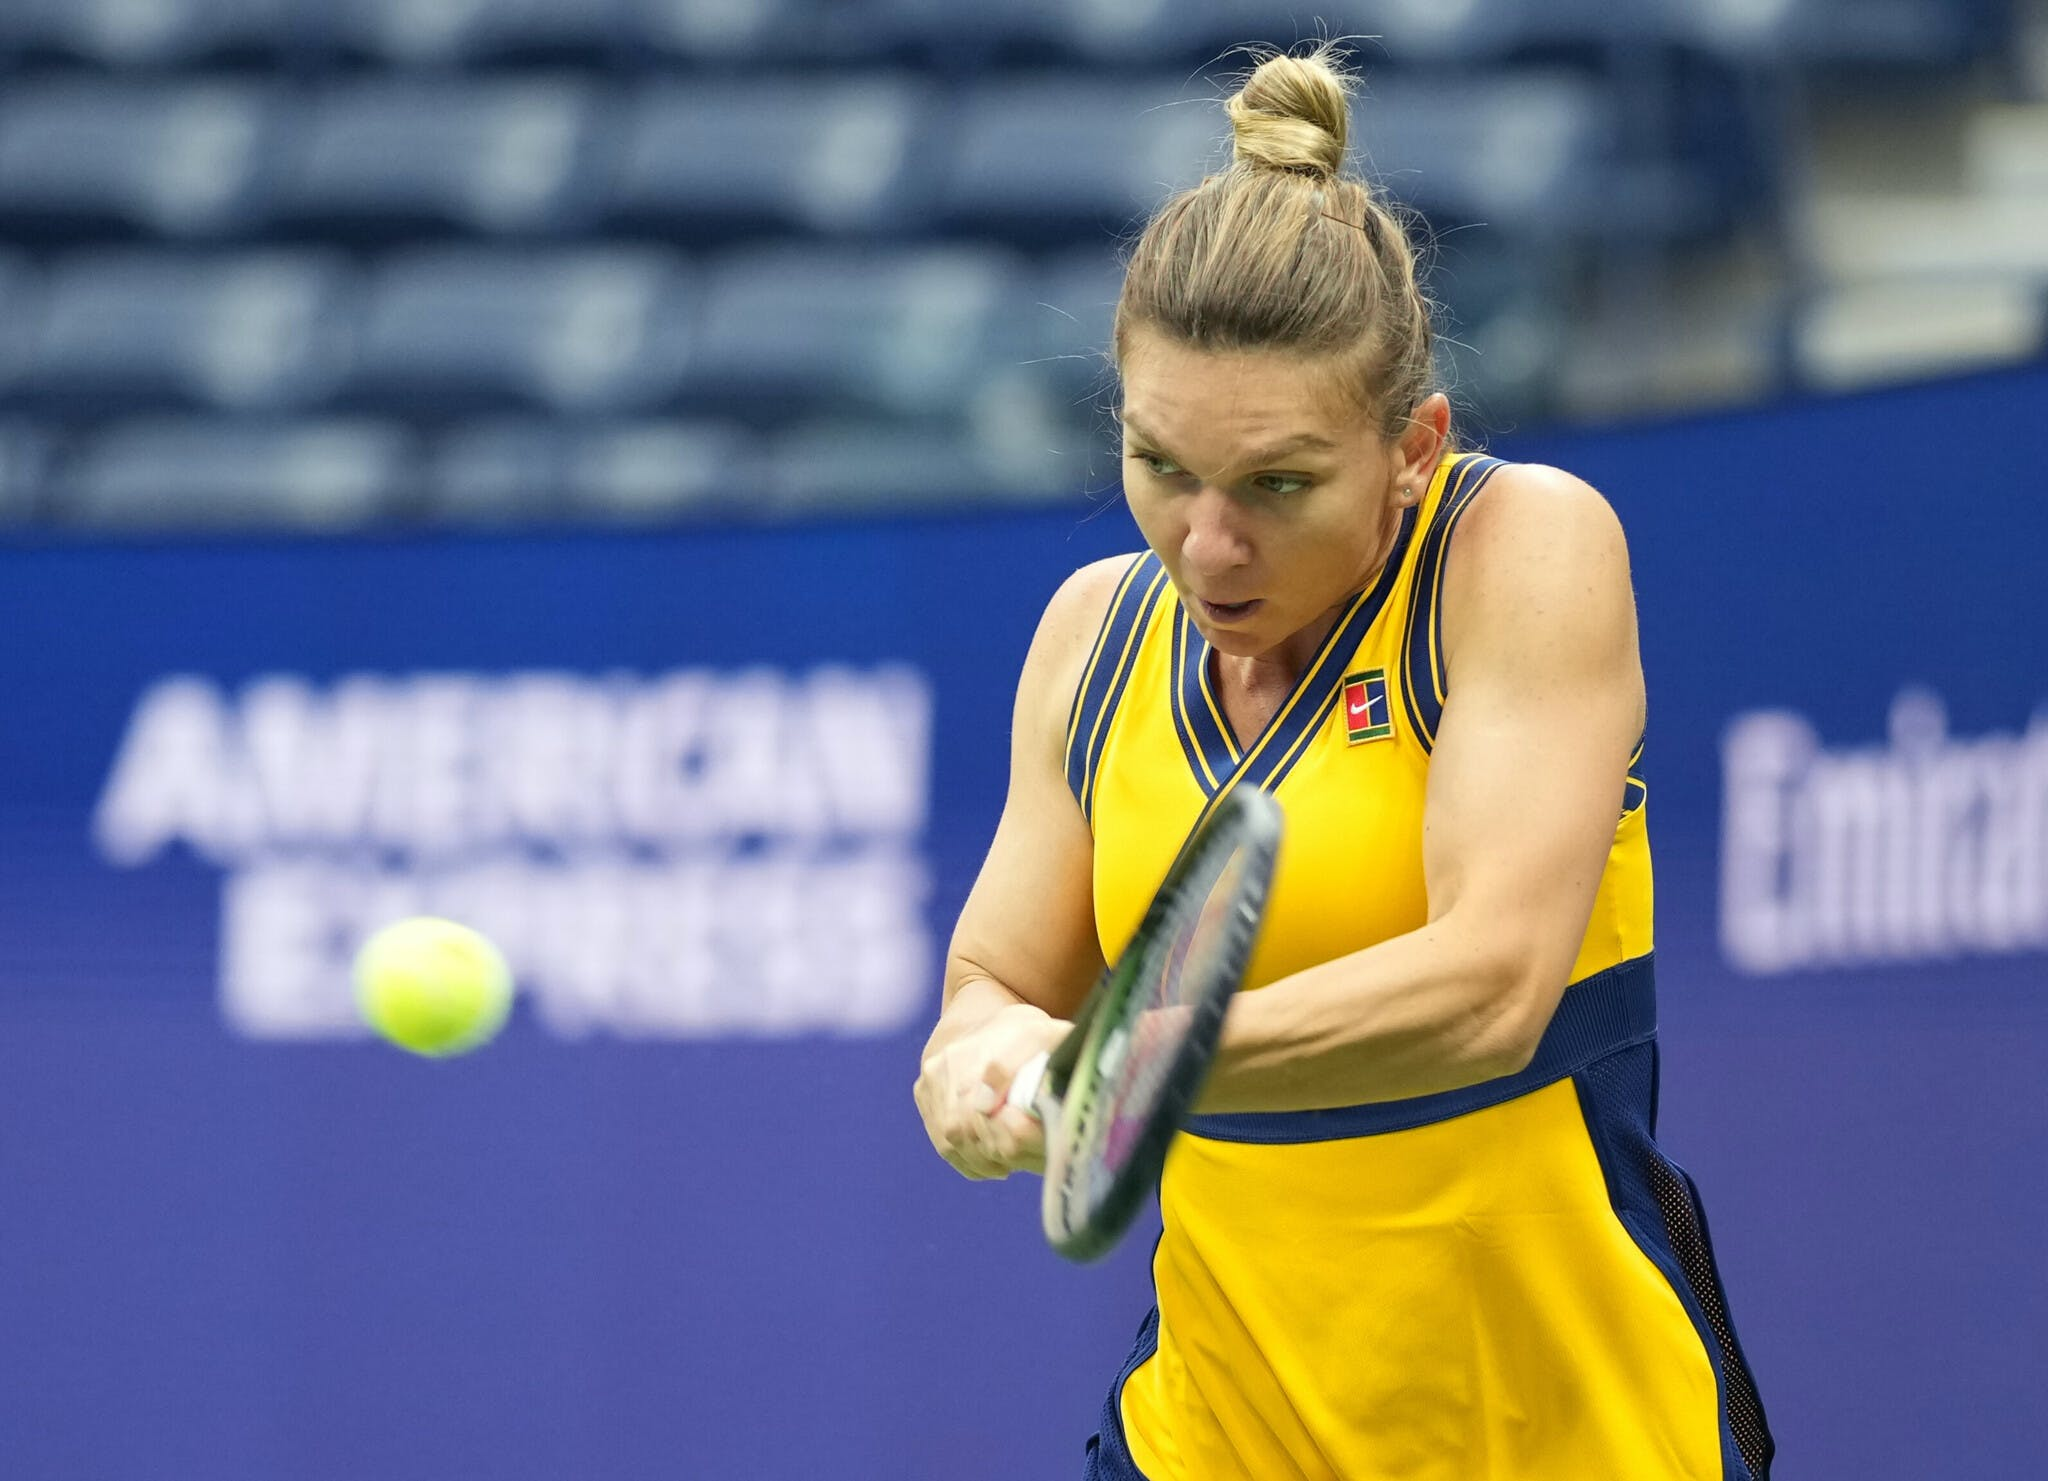 Simona Halep hitting a backhand during the 2021 US Open